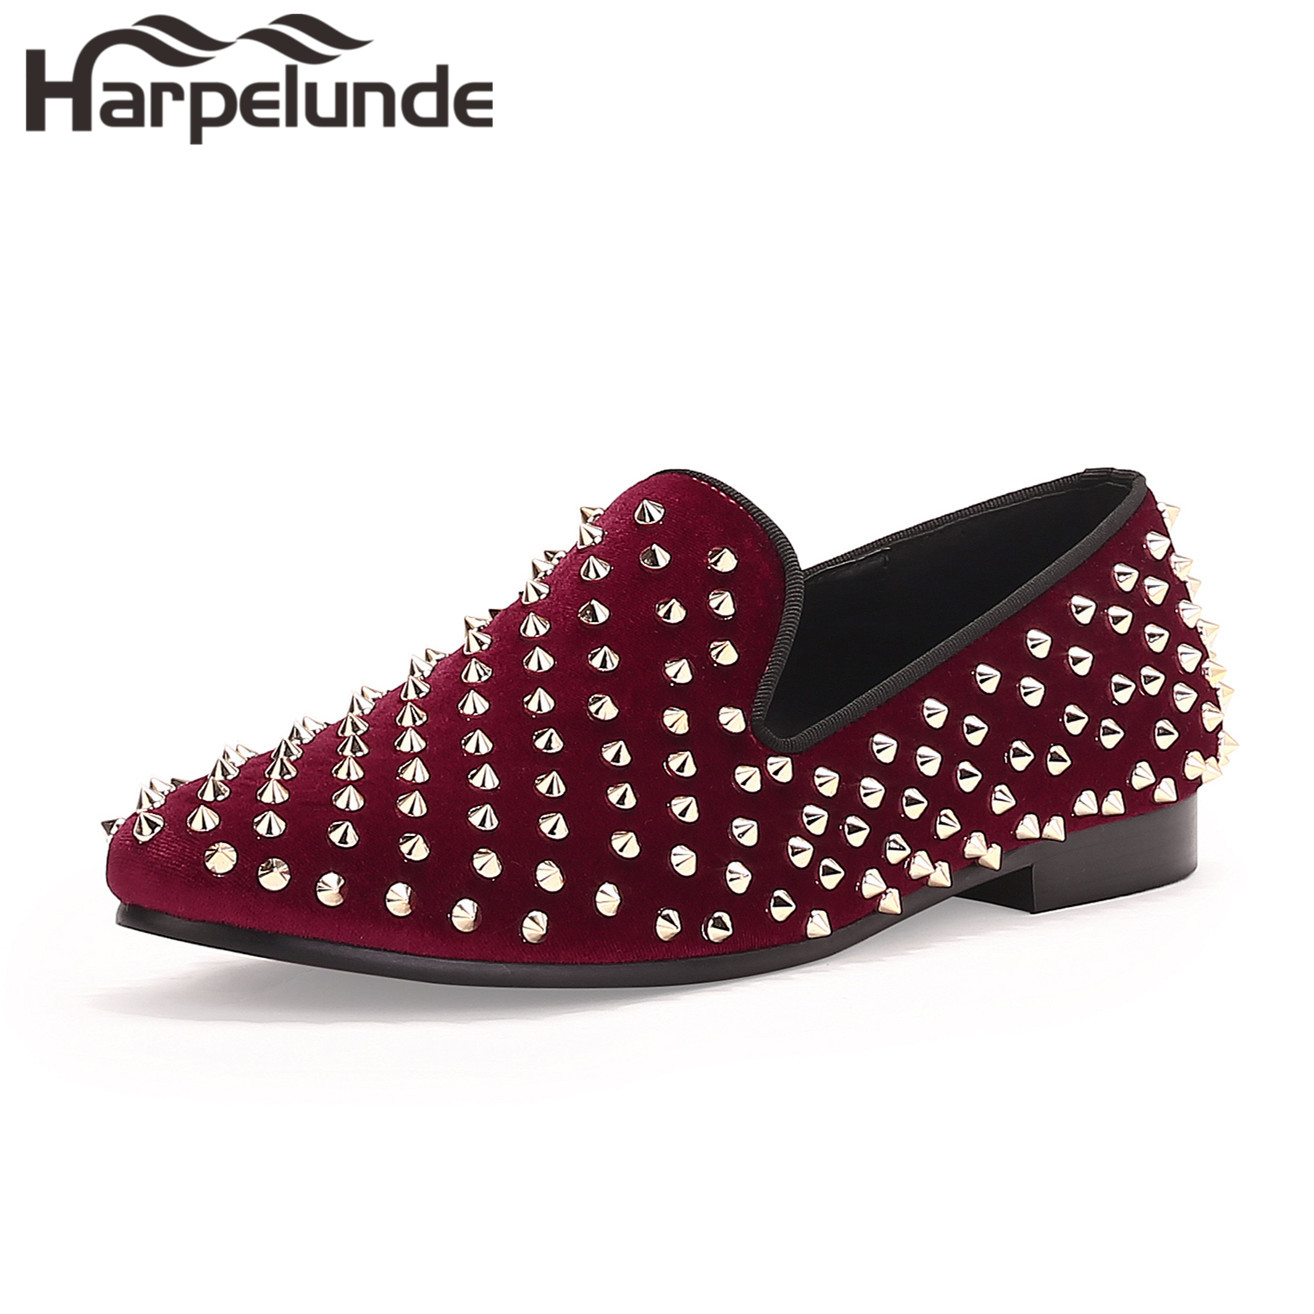 Rouge Hommes Noir bleu Main Harpelunde 6 14 rouge Mocassins Appartements Taille Chaussures Velours Pointes 0wnO8Pk